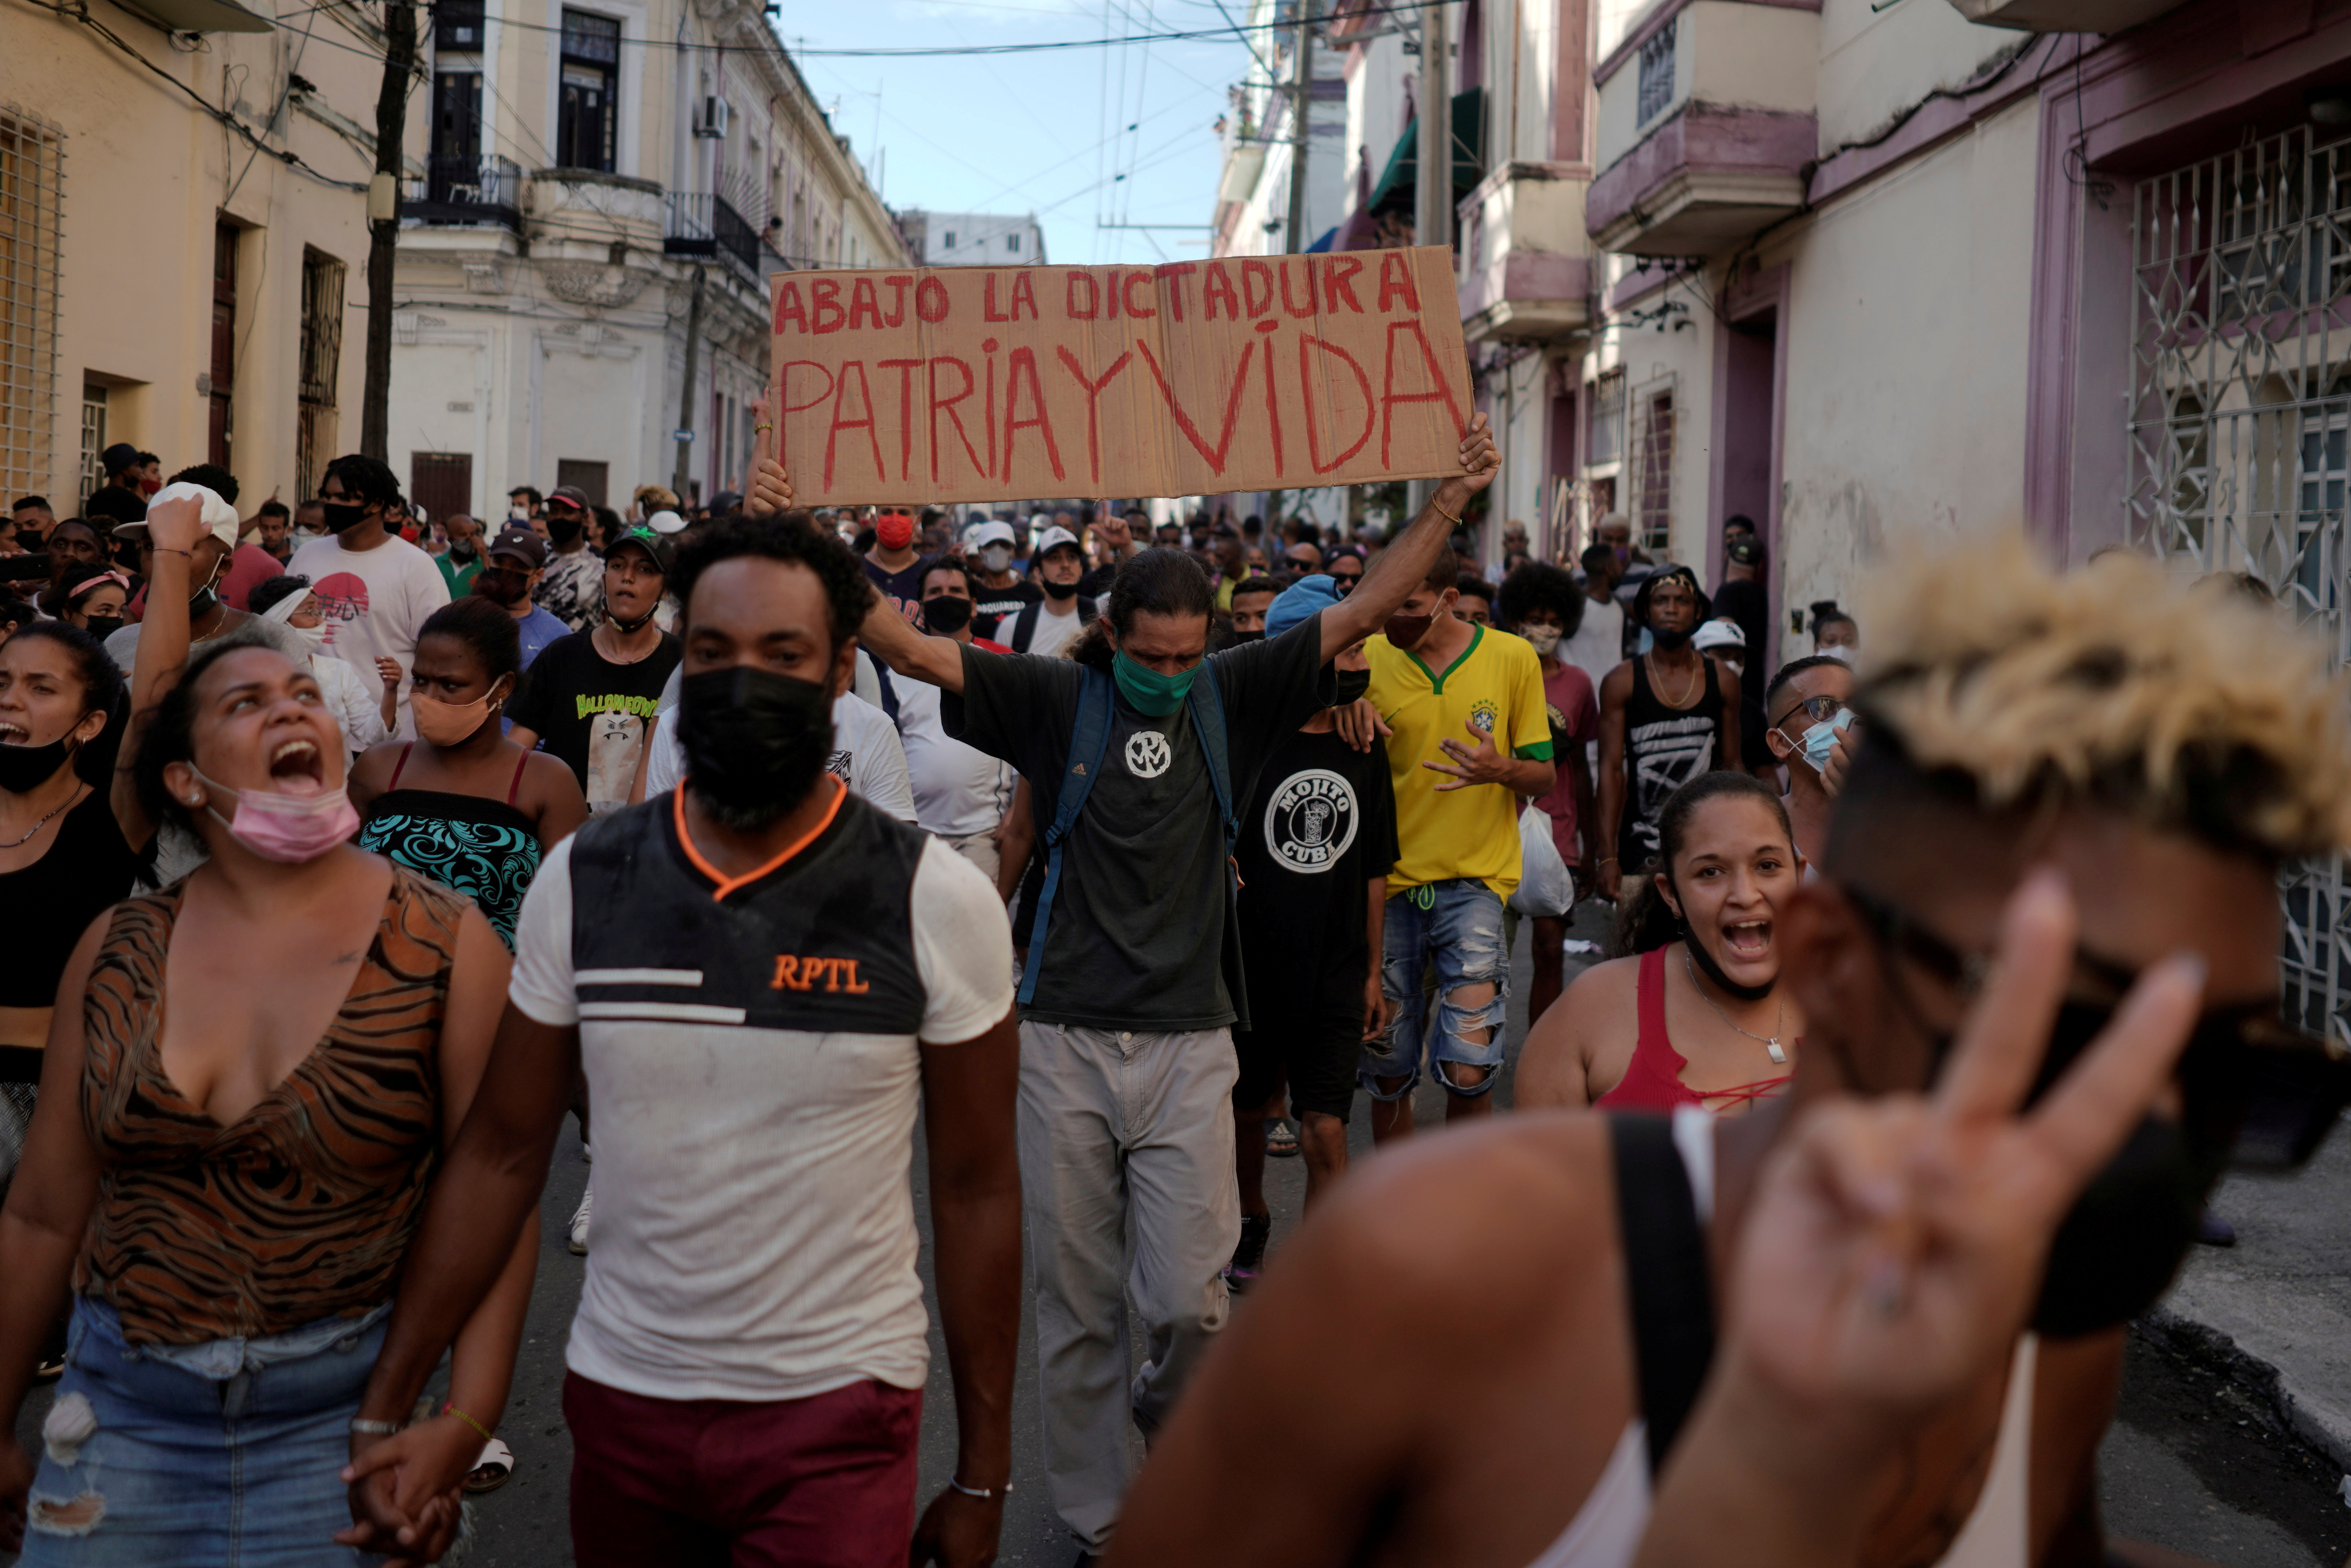 People shout slogans against the government during a protest against and in support of the government, amidst the coronavirus disease (COVID-19) outbreak, in Havana, Cuba July 11, 2021. REUTERS/Alexandre Meneghini/File Photo